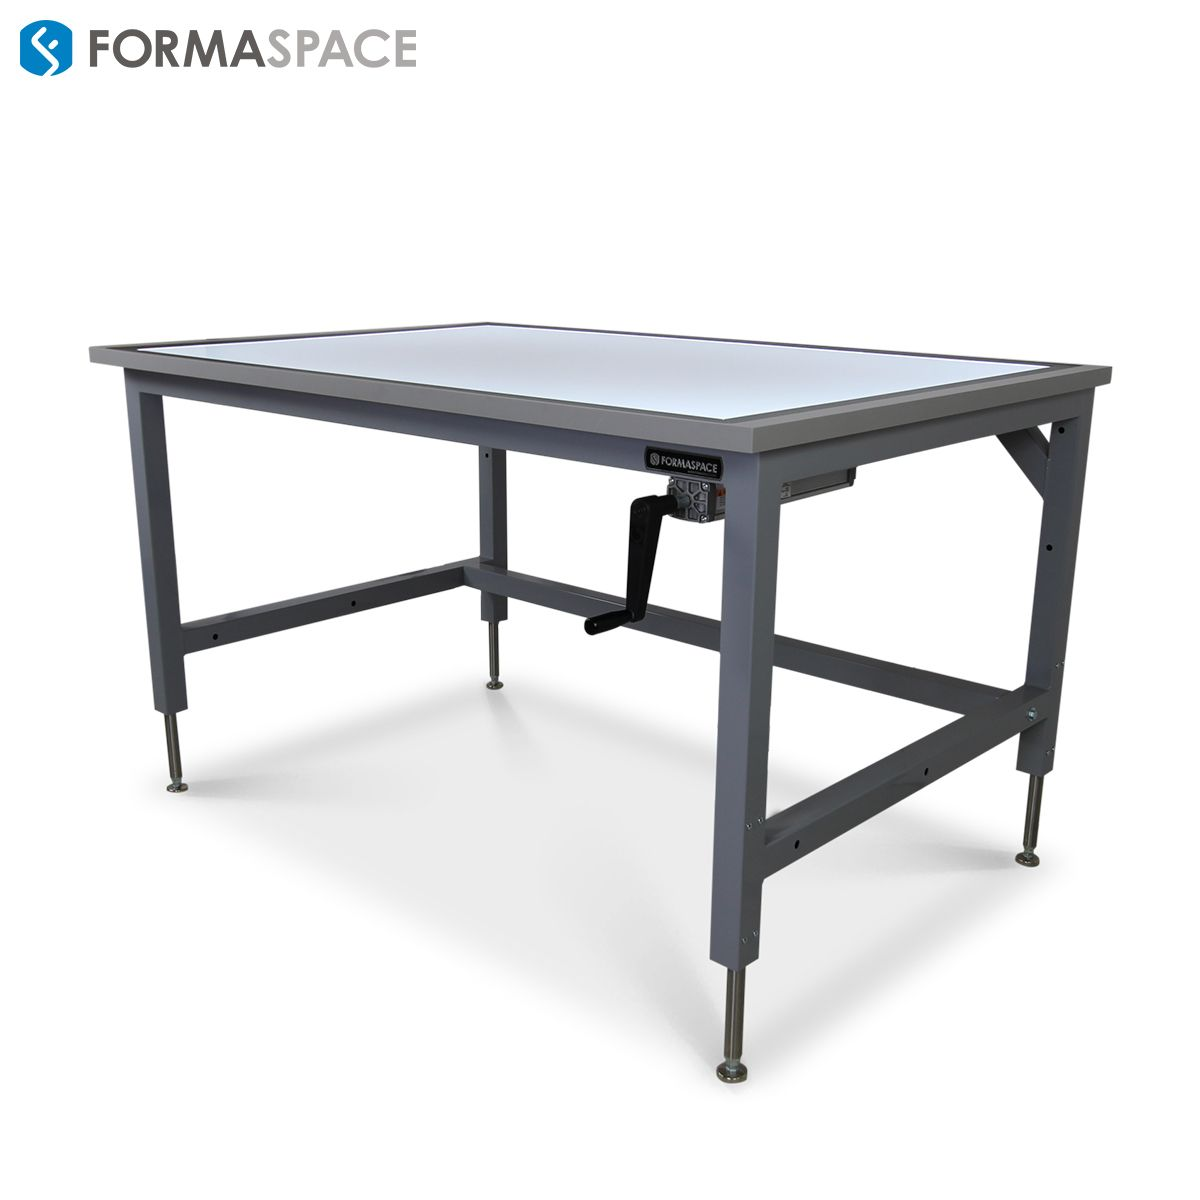 Custom Light Up Drafting Table (With images) | Drafting